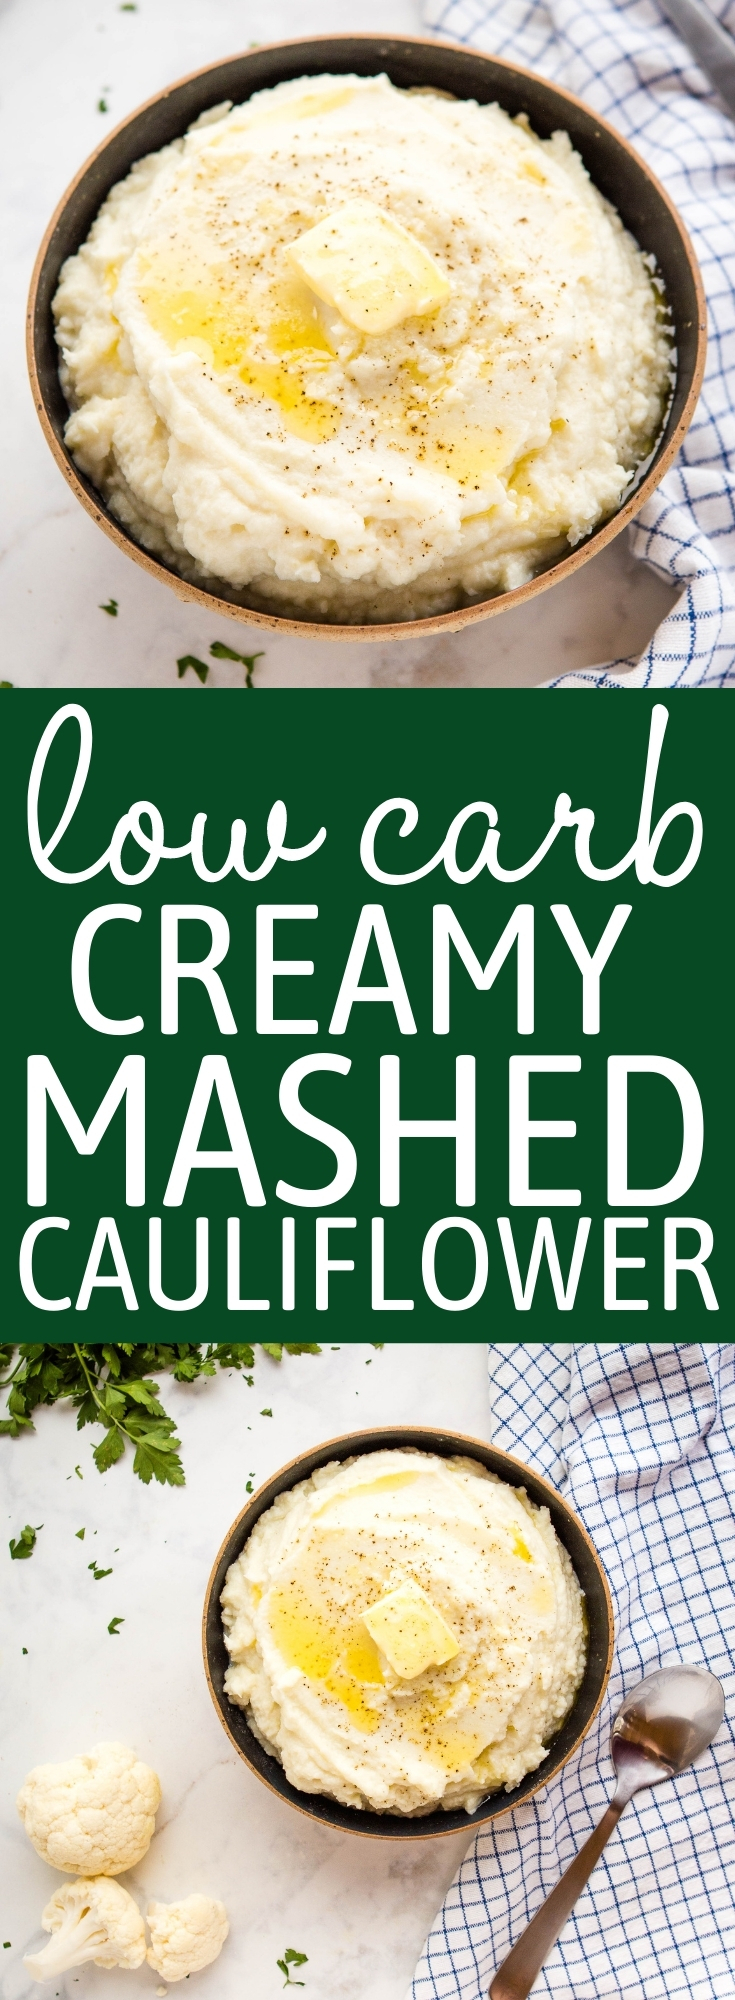 This Low Carb Cauliflower Mash is the perfect Keto alternative to mashed potatoes! Rich and creamy with the perfect starchy texture, and only 5 grams of net carbs per serving! Recipe from thebusybaker.ca! #lowcarb #creamy #mashedcauliflower #cauliflowermash #keto #mashedpotatoes #sidedish #ketosidedish via @busybakerblog